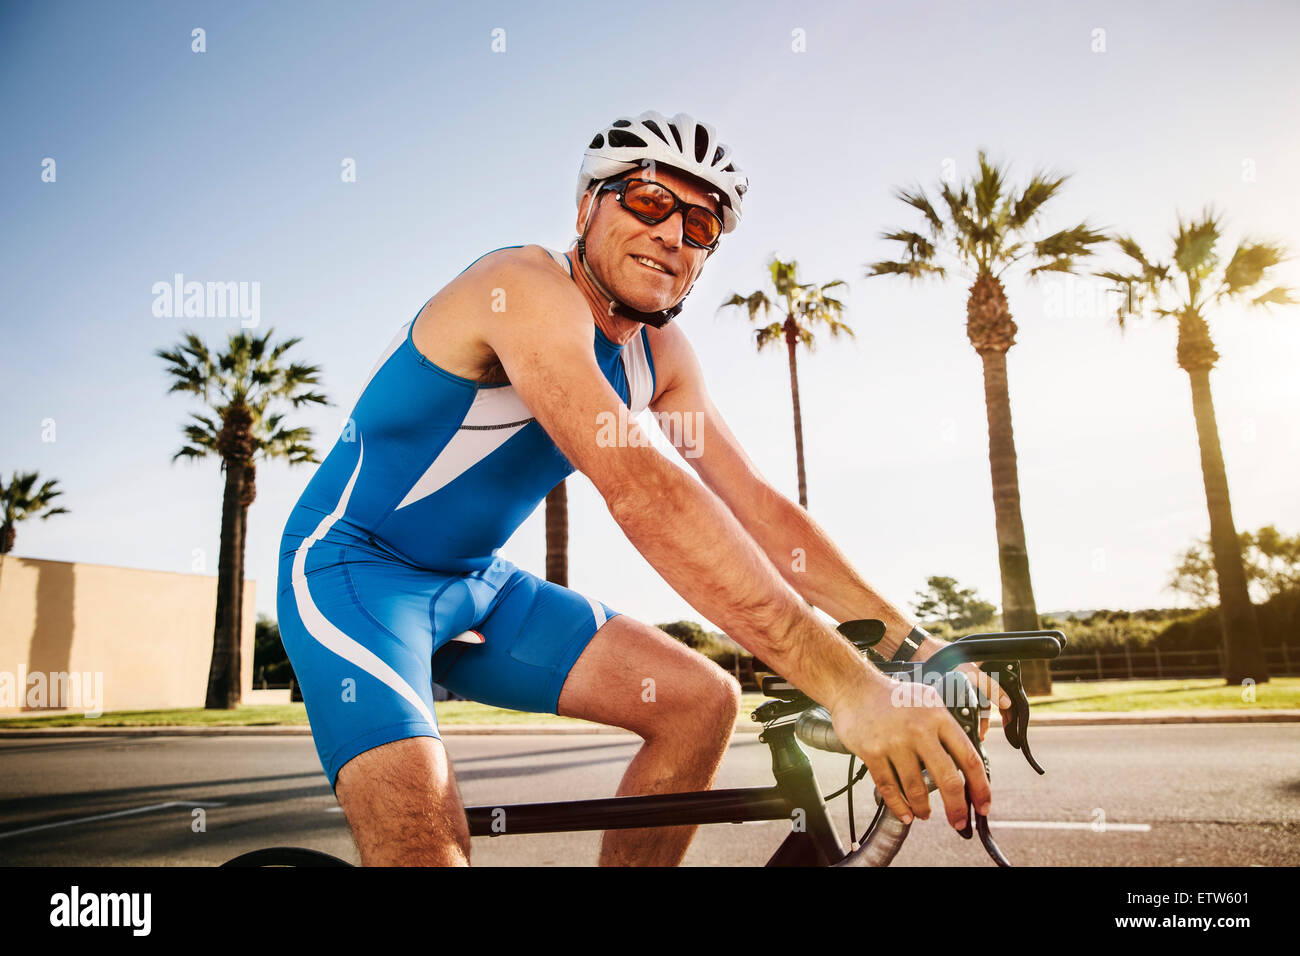 Spain, Mallorca, Sa Coma, smiling triathlet training on bicycle - Stock Image